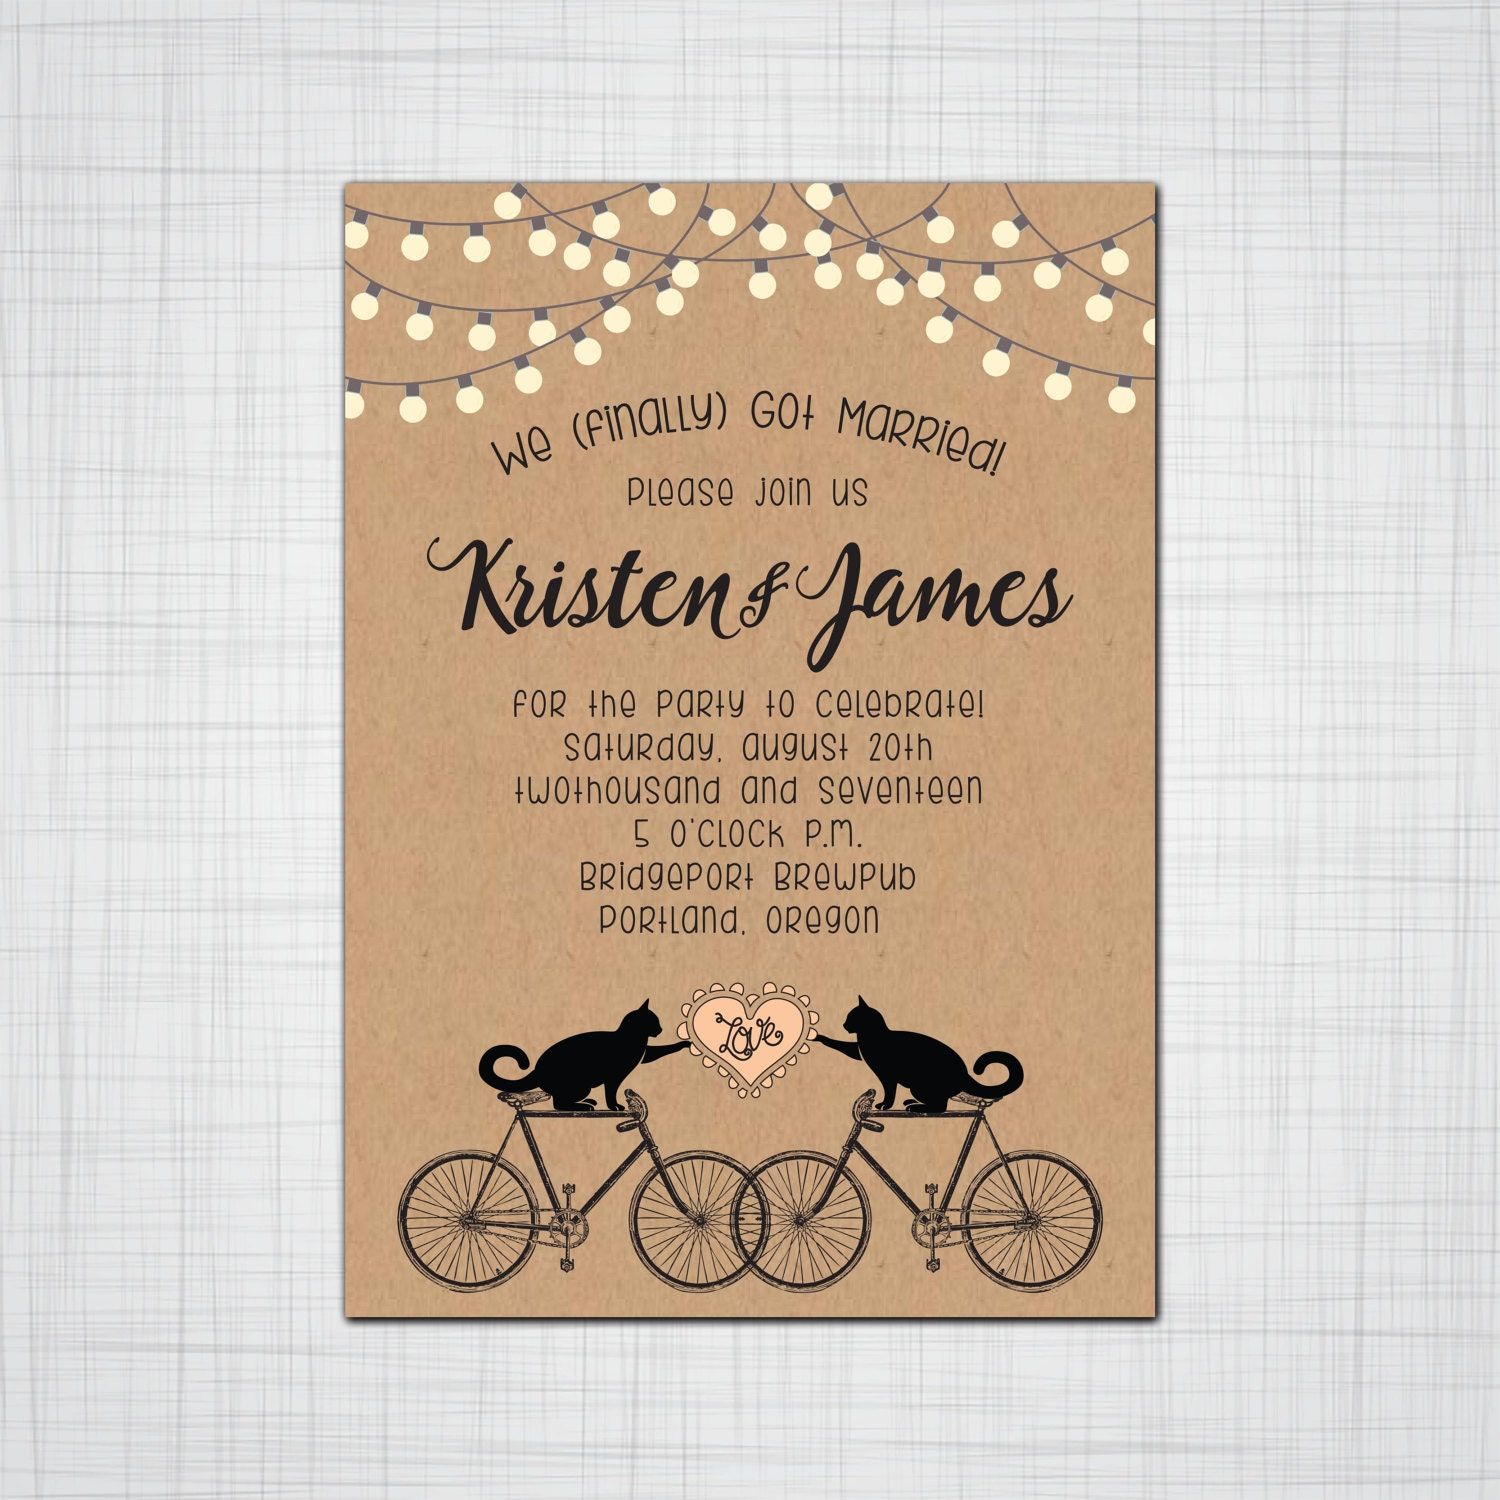 Cats On Bikes Rustic Whimsy Wedding Or Elopement Party Invitations RSVP Cards Post Envelopes Included Fun Whimsical